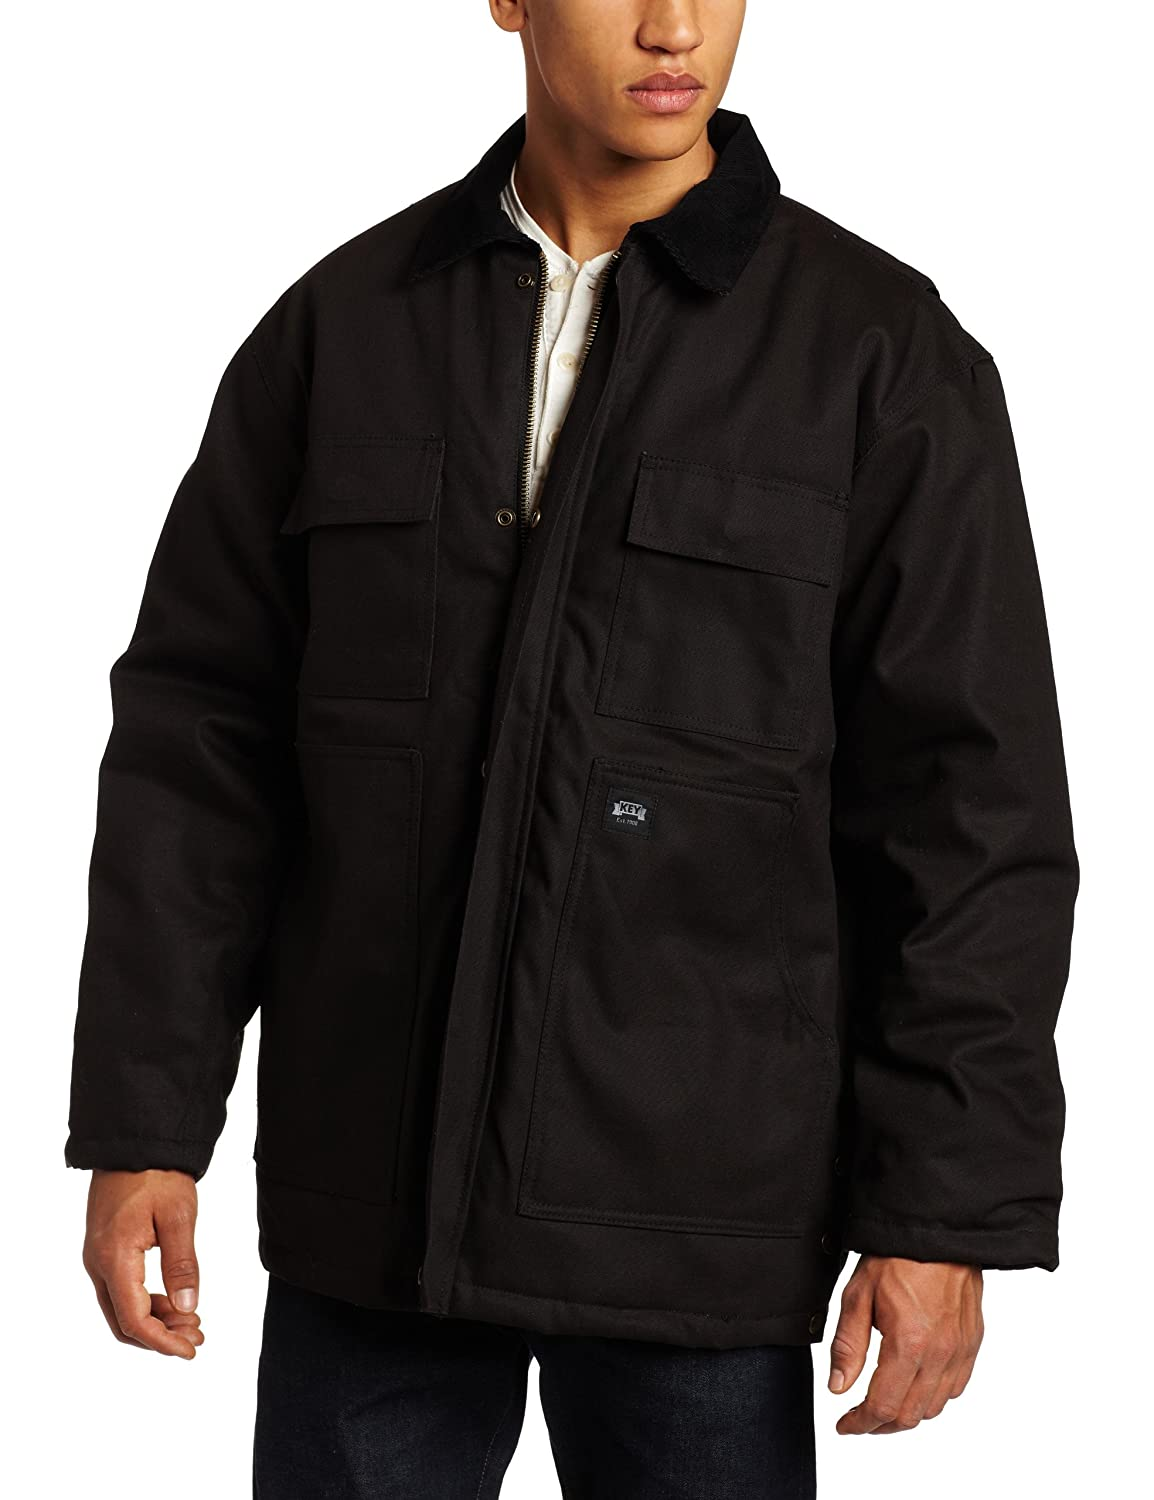 Polar King by Key Apparel Insulated Duck Chore Coat